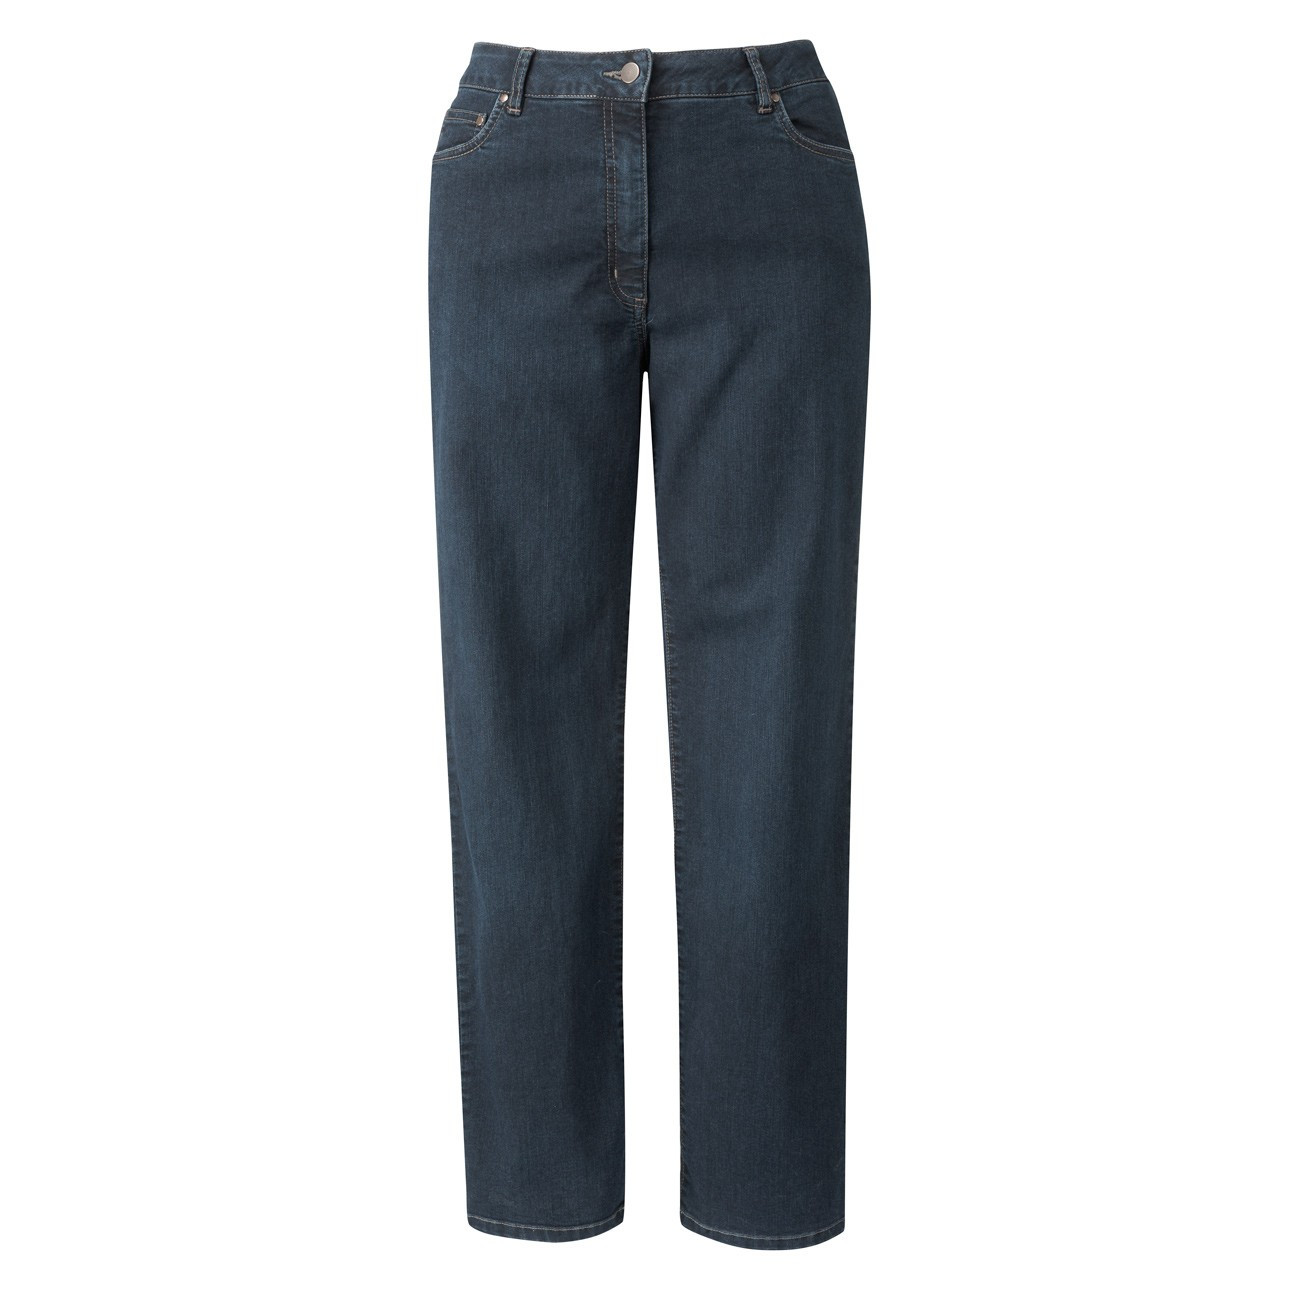 NP Blue Denim Straight Leg Jeans